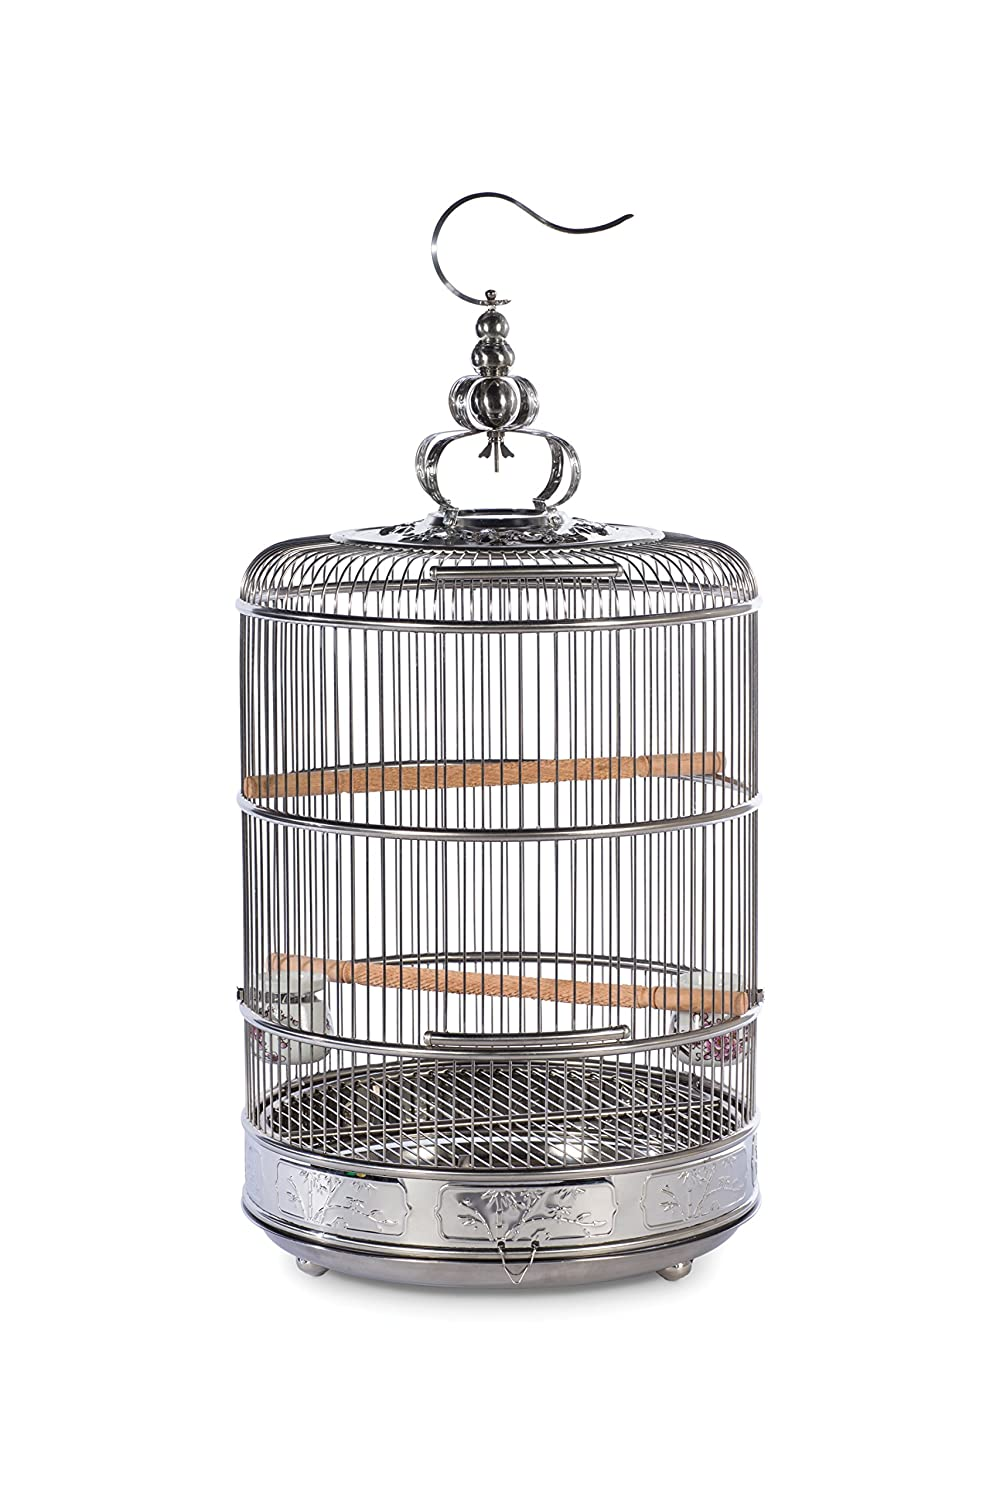 PREVUE PET PRODUCTS Empress Stainless Steel Bird Cage 151, Stainless Steel